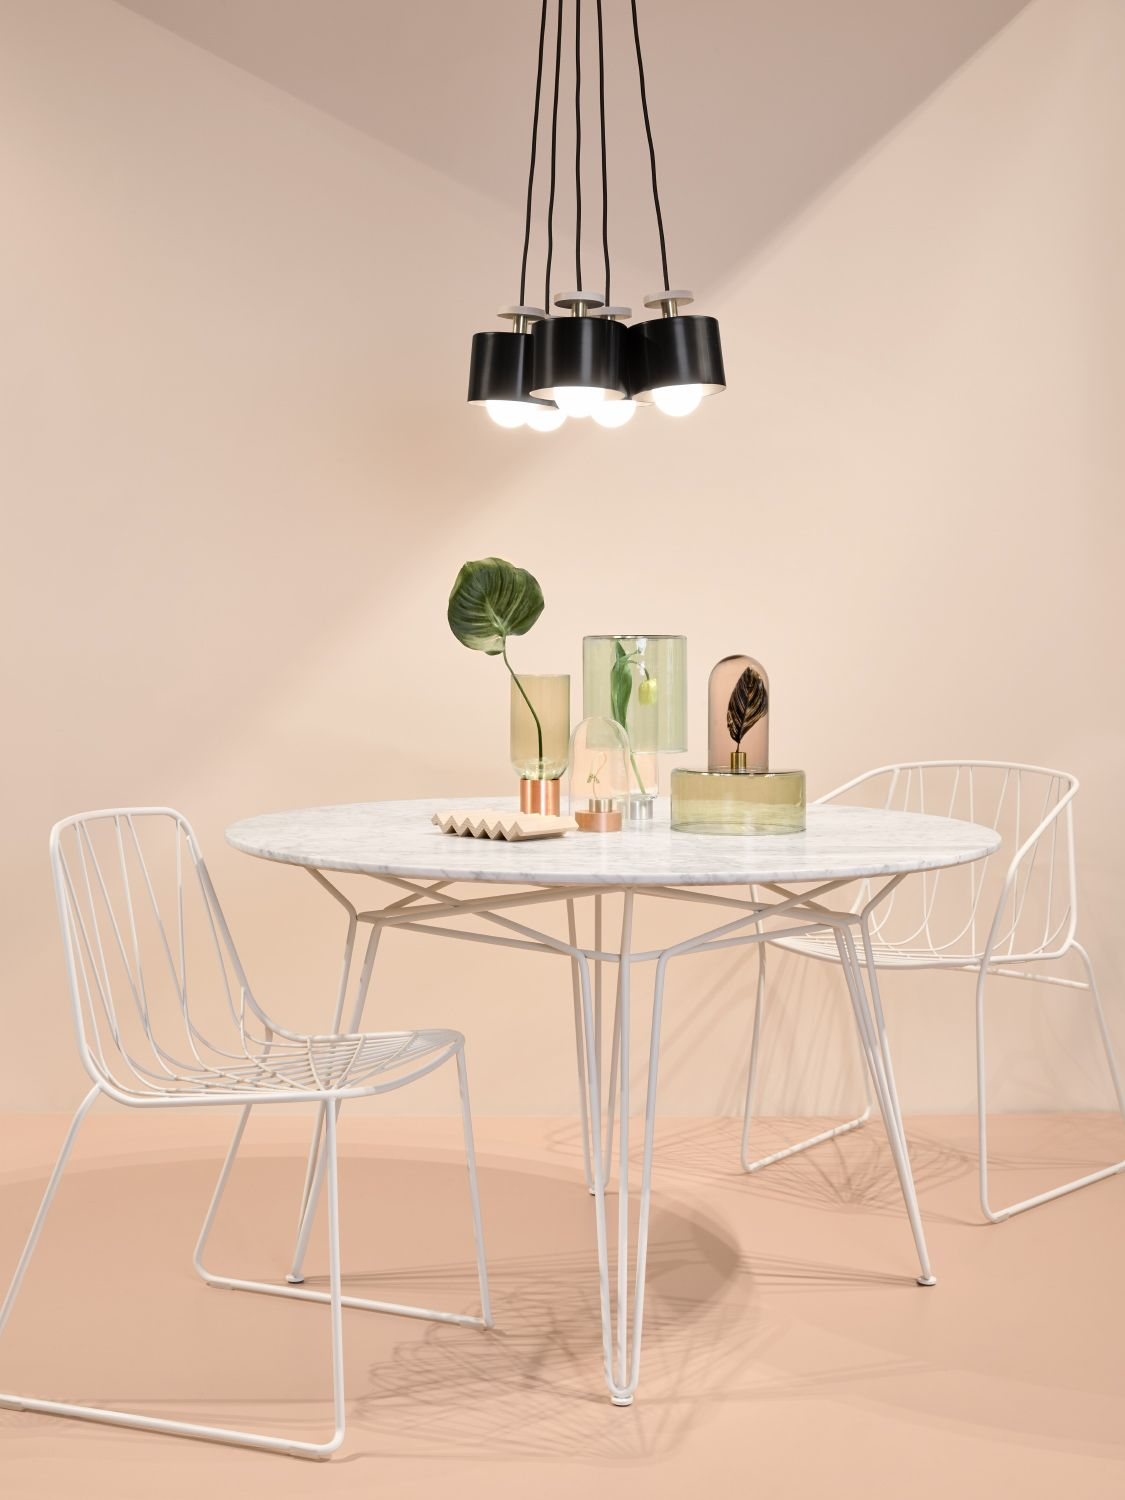 down under furniture. A Down Under Furniture Brand Meets An American Favorite In Soho - Sight Unseen N